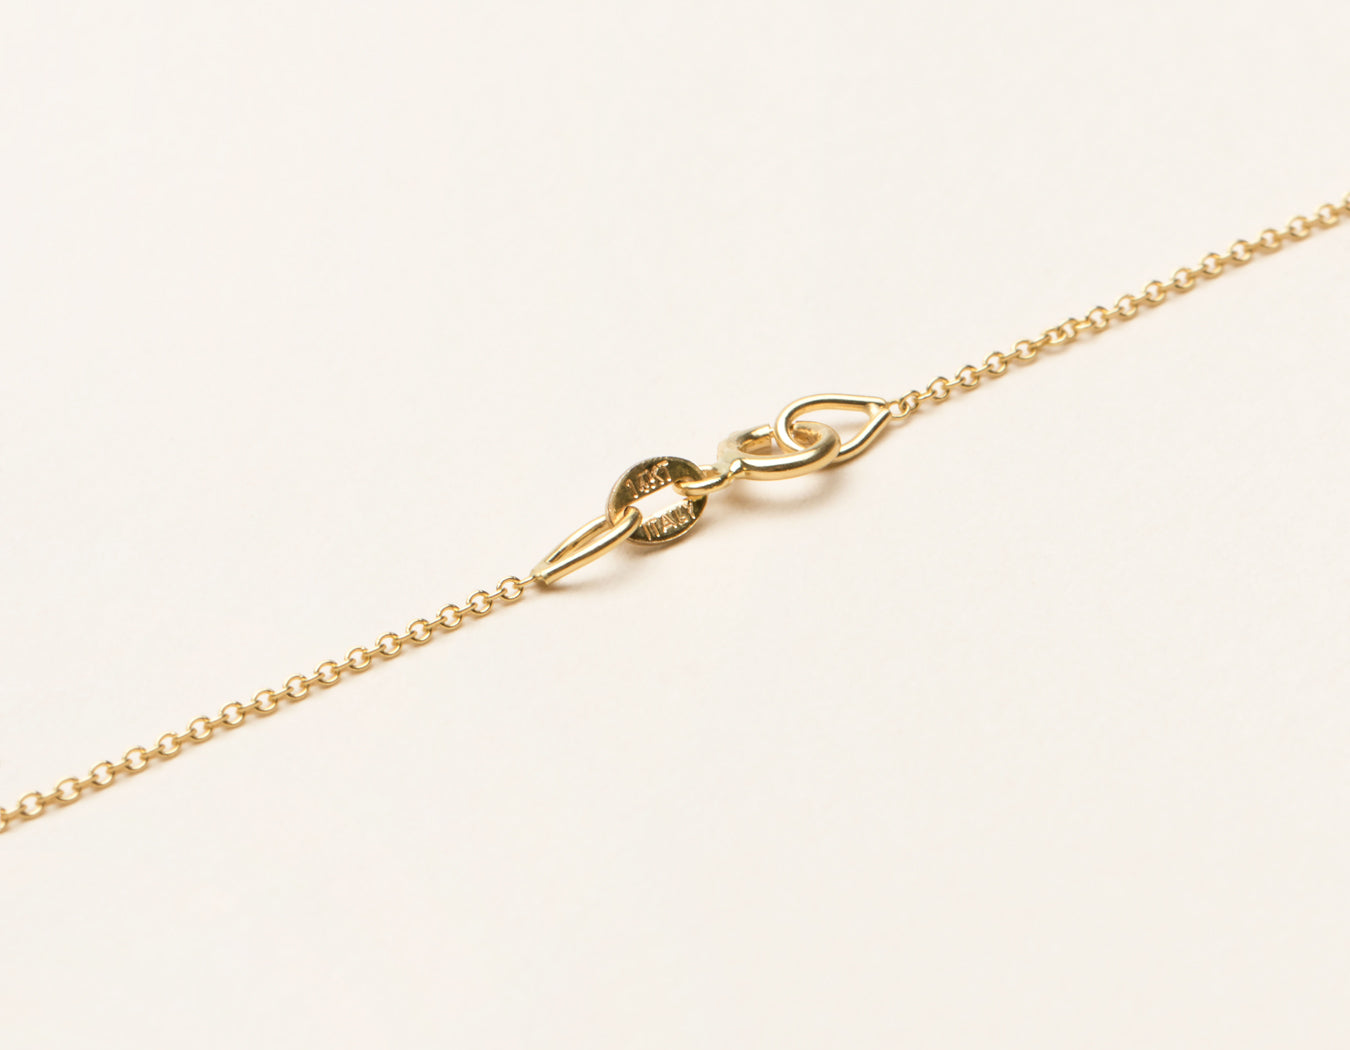 Simple classic 14k solid gold Oval Link Chain necklace with spring ring clasp by Vrai & Oro sustainable jewelry, 14K Yellow Gold